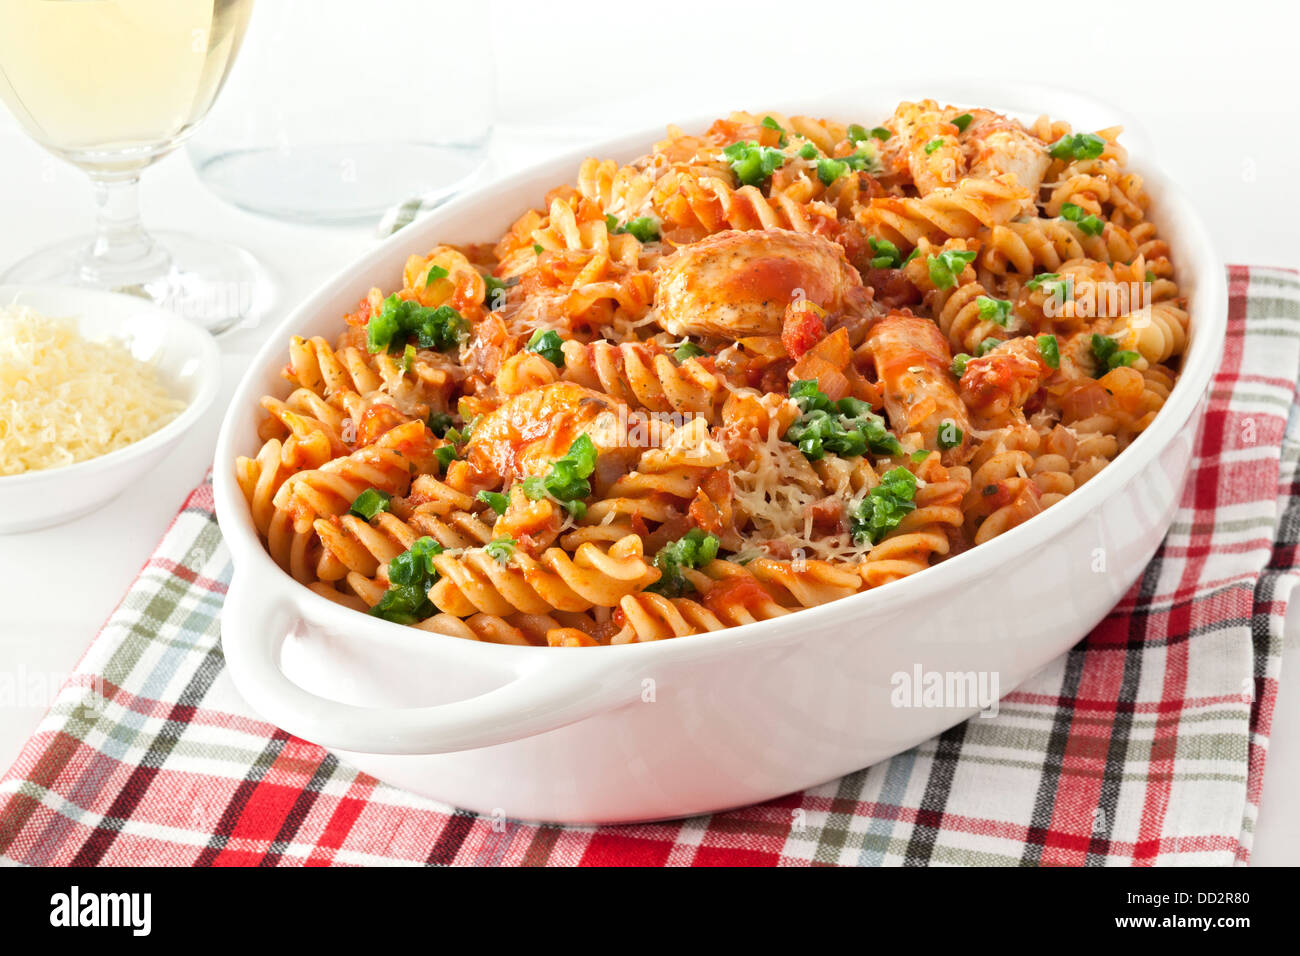 Pasta Bake with Chicken - fusili or spiral pasta, baked with chicken and marinara, topped with green chilli and Stock Photo